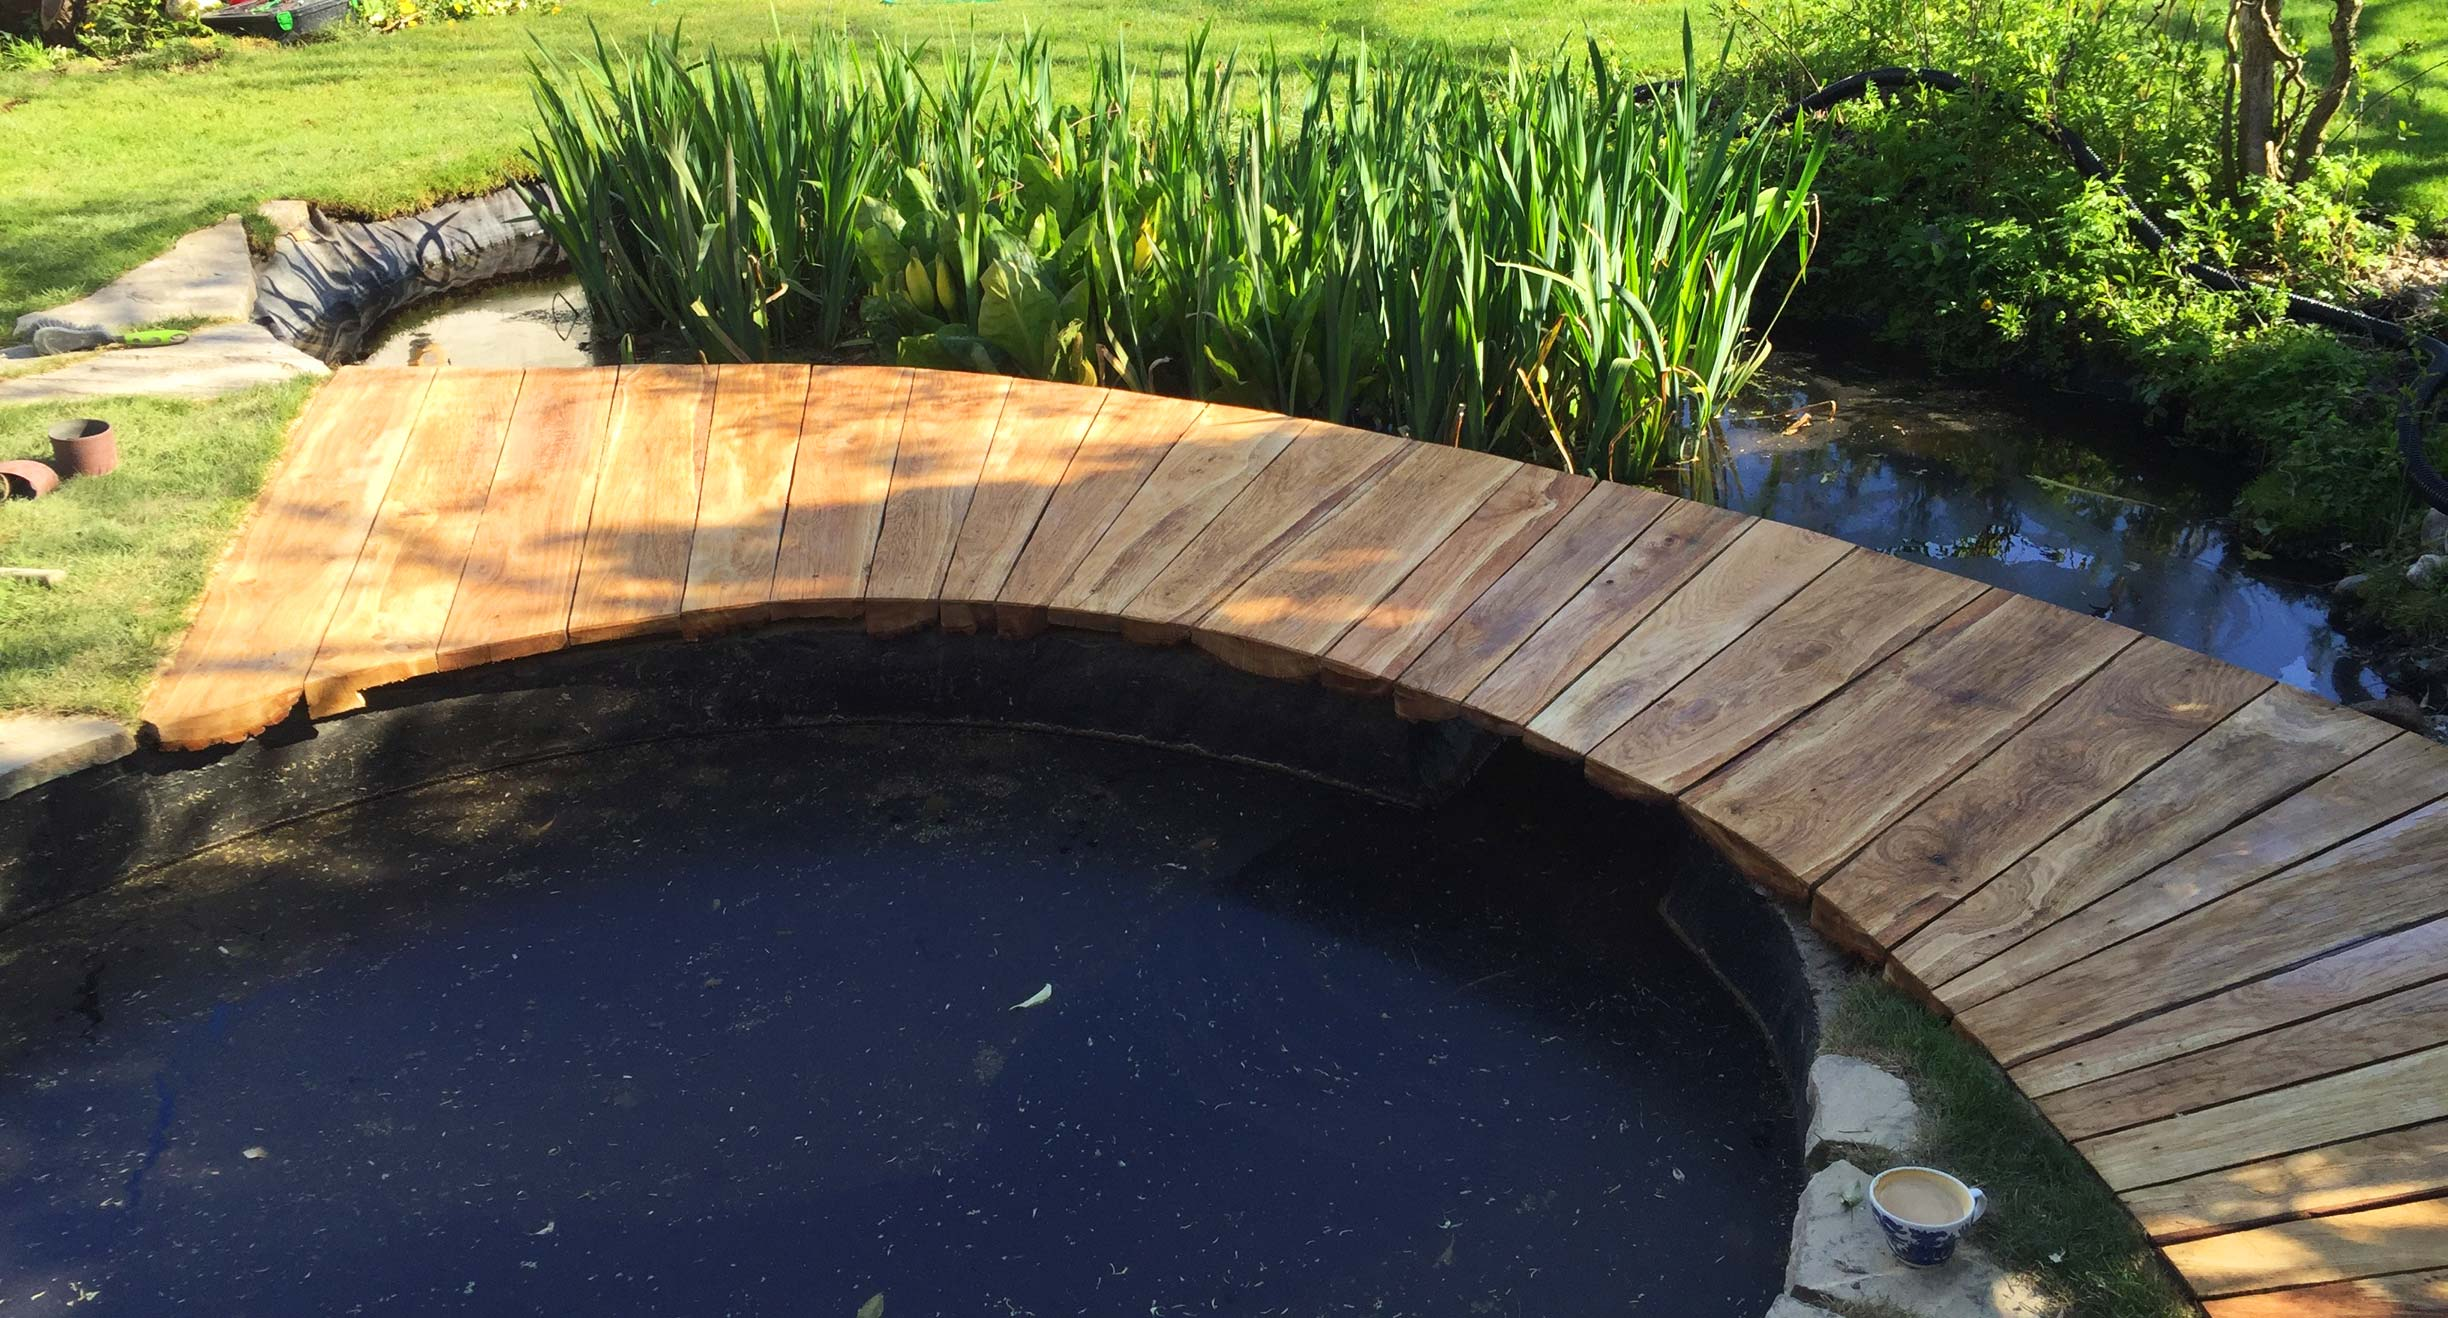 Gardening services in brighton - garden pond & wooden bridge walkway